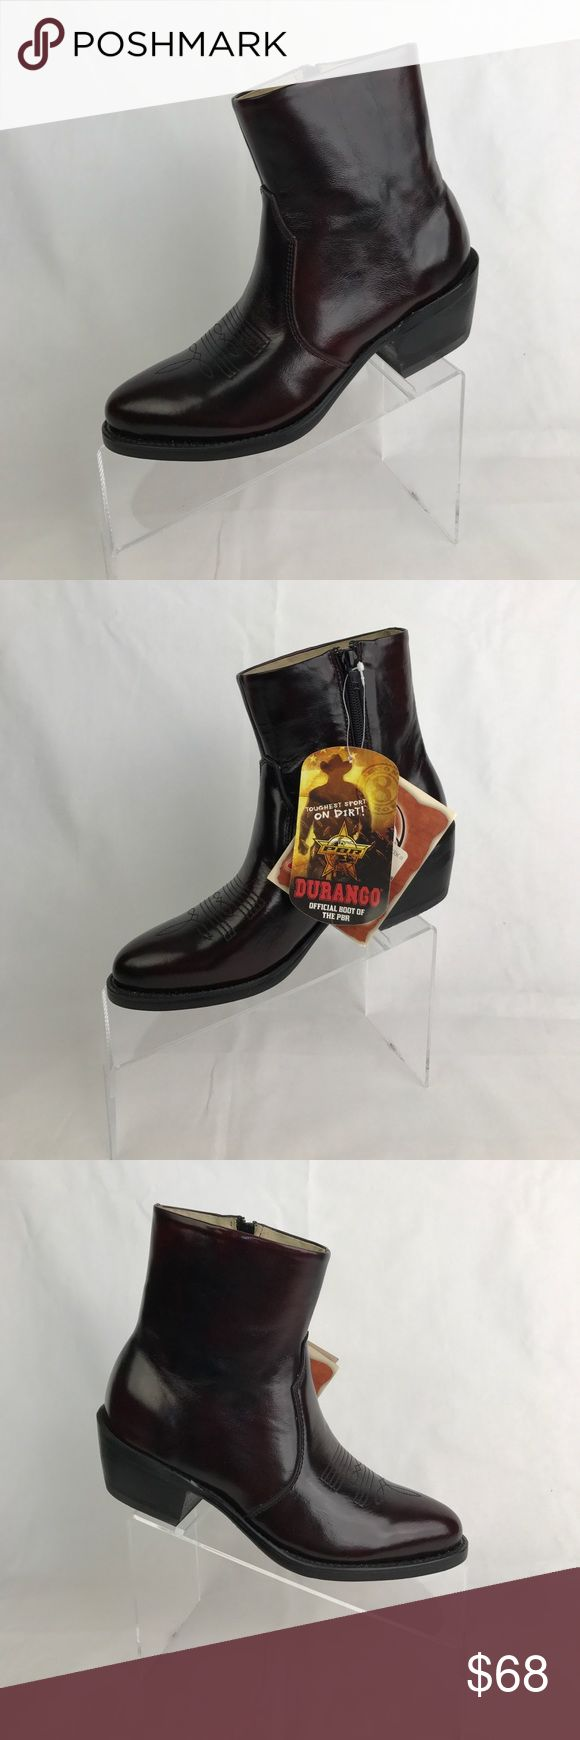 Women's Durango Western Boots 6EE Boots are brand new with tags. They are a maroon wine color. Durango Shoes Ankle Boots & Booties